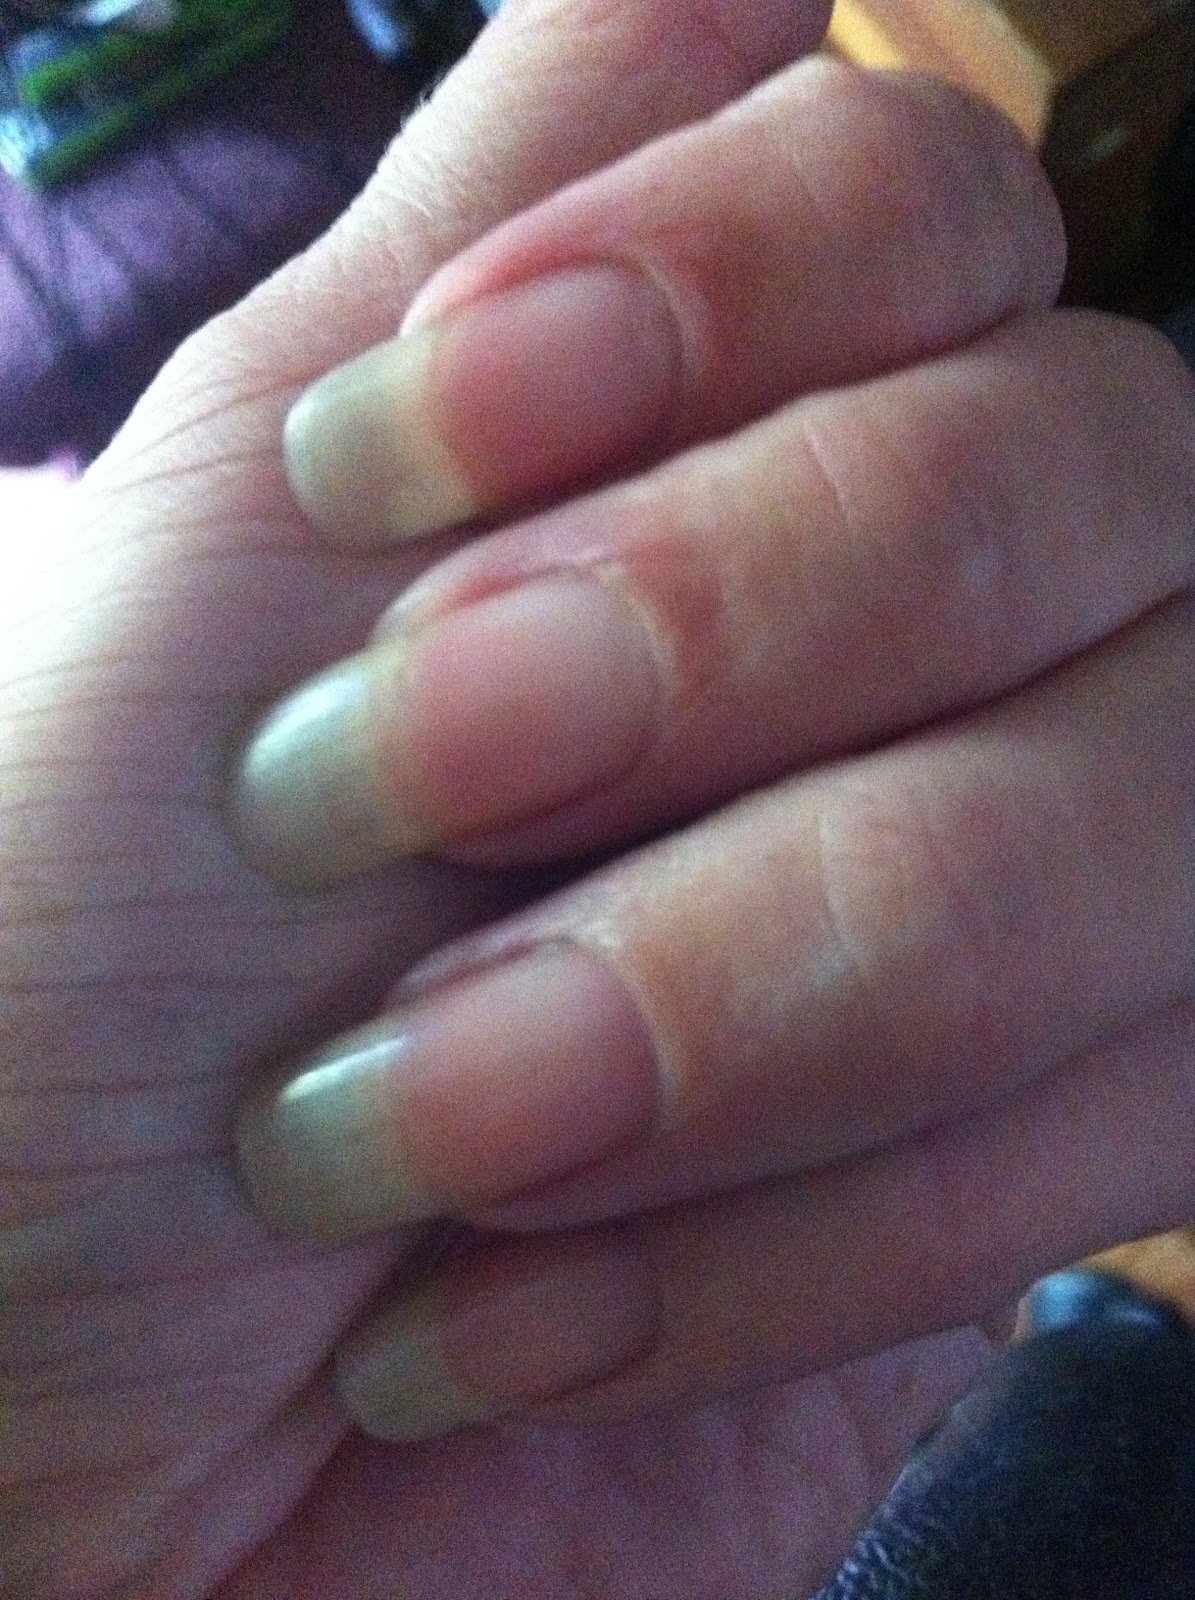 Nails: Hoofers choice nail and cuticle cream review